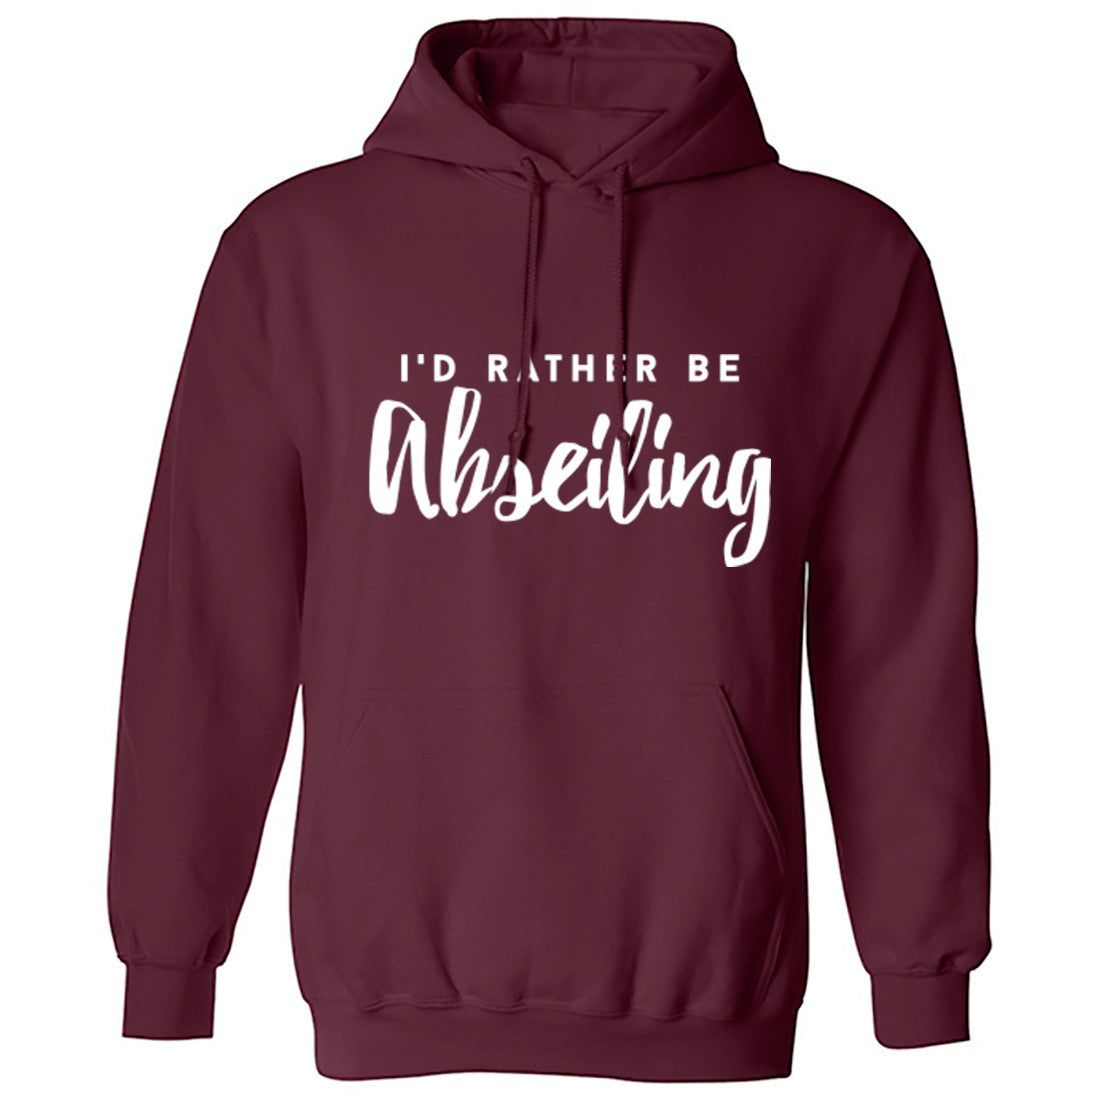 I'd Rather Be Abseiling Unisex Hoodie K0213 - Illustrated Identity Ltd.